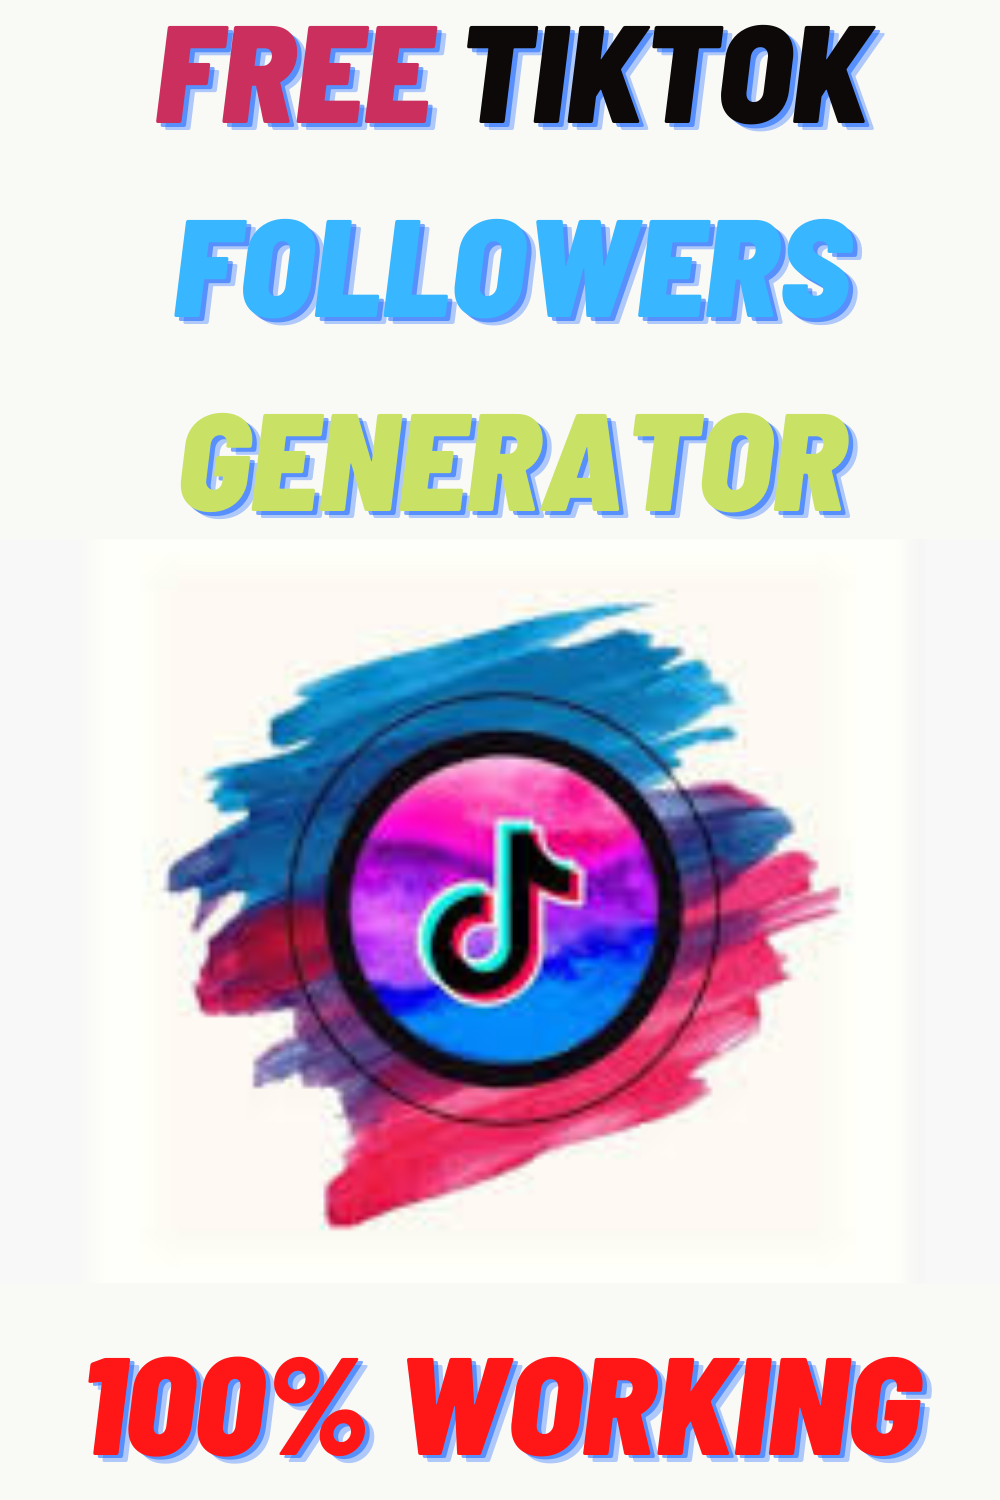 How To Get Free Real Followers On Tiktok And Become Famus Generation Free Free Followers